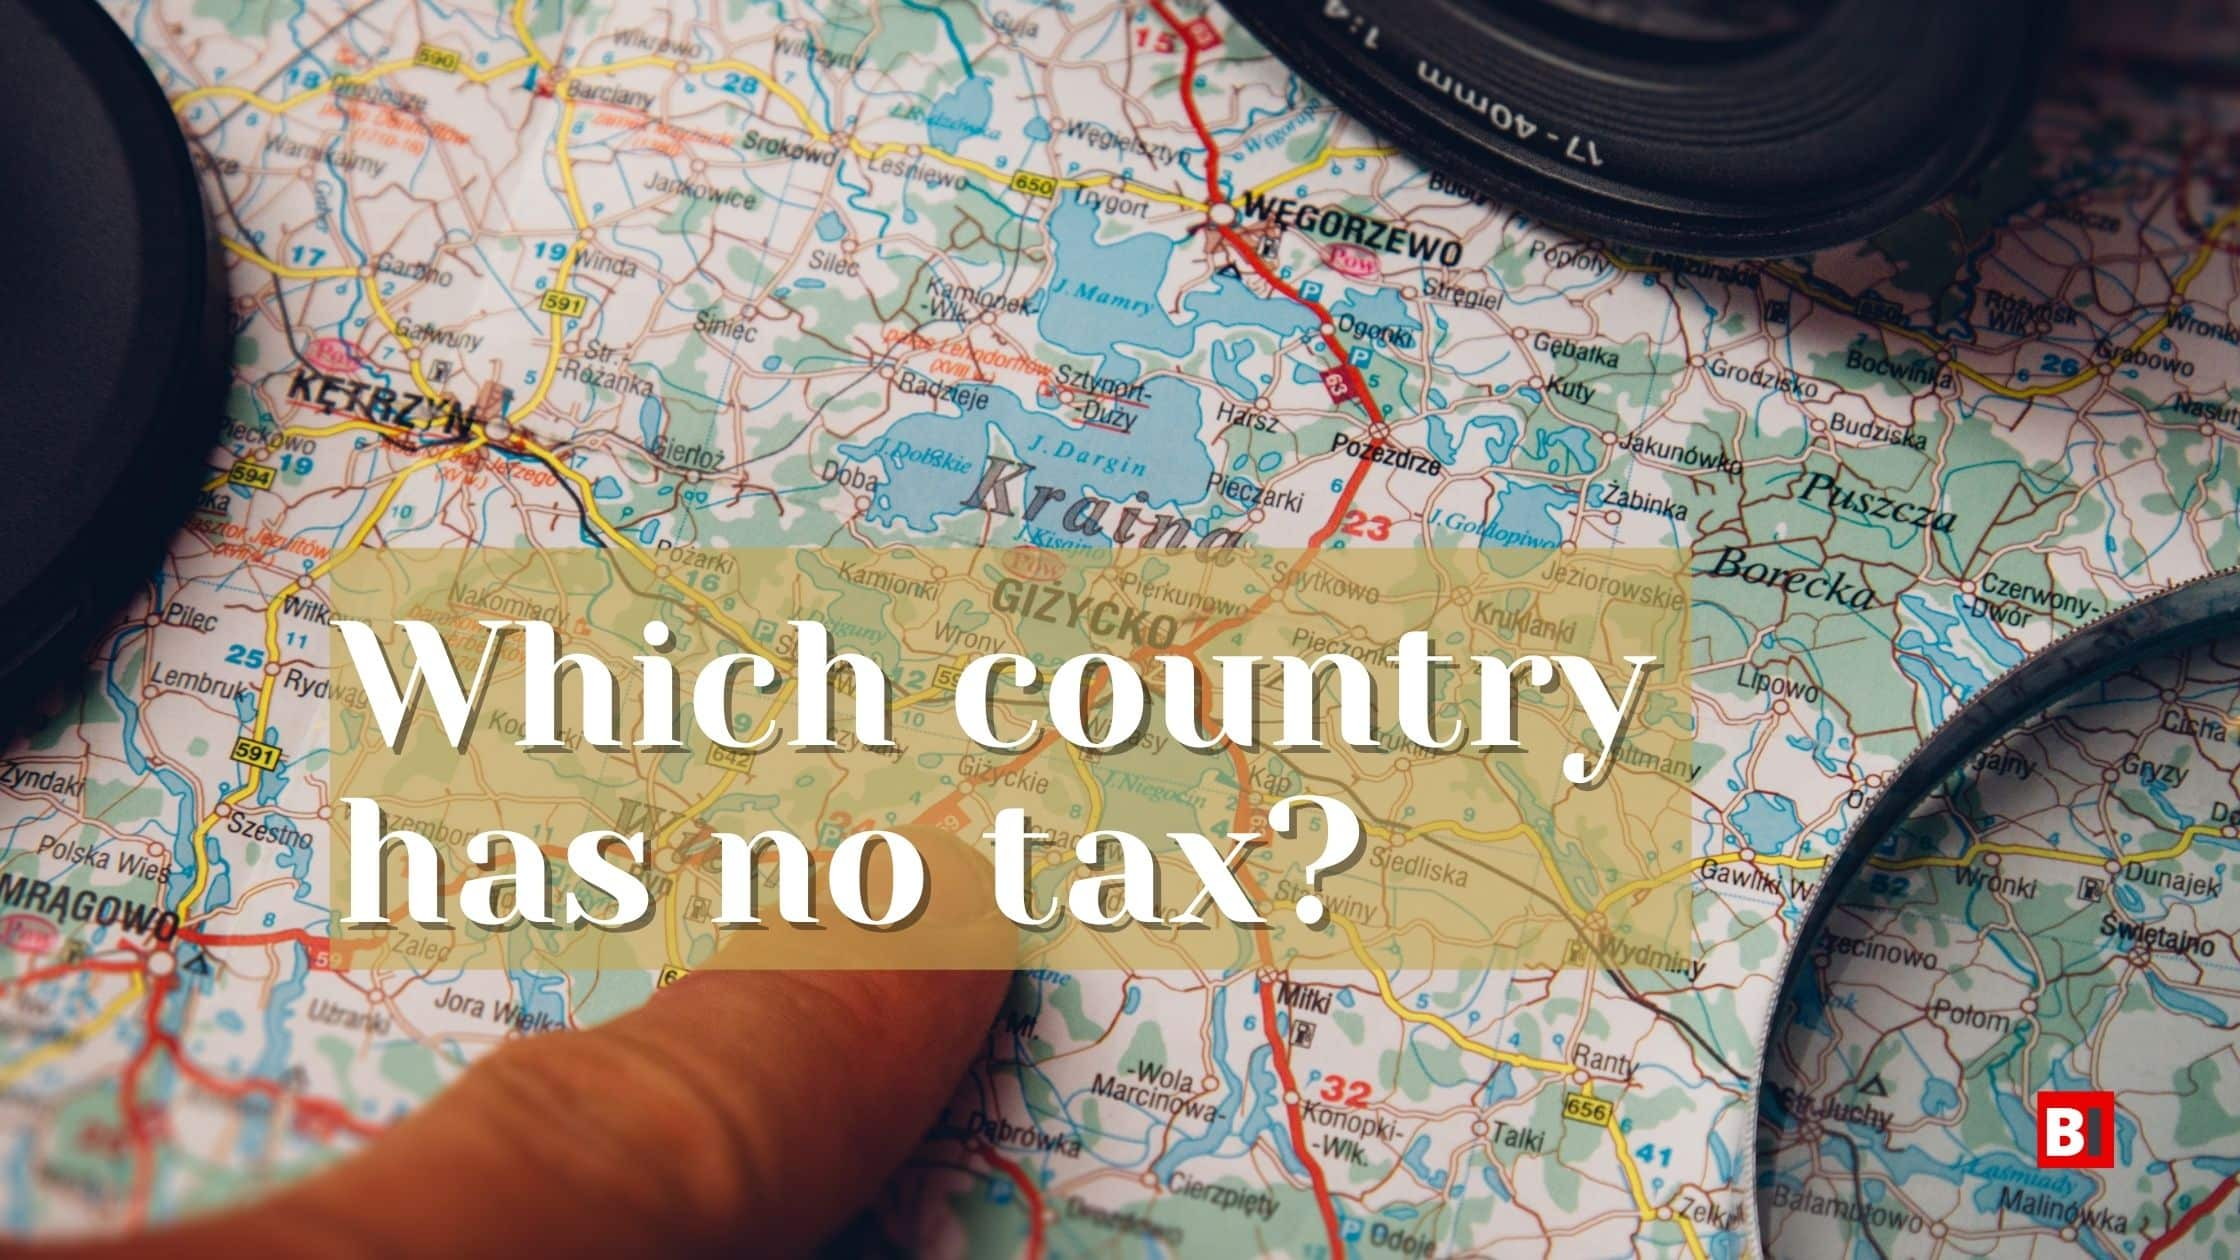 Which country has no tax?